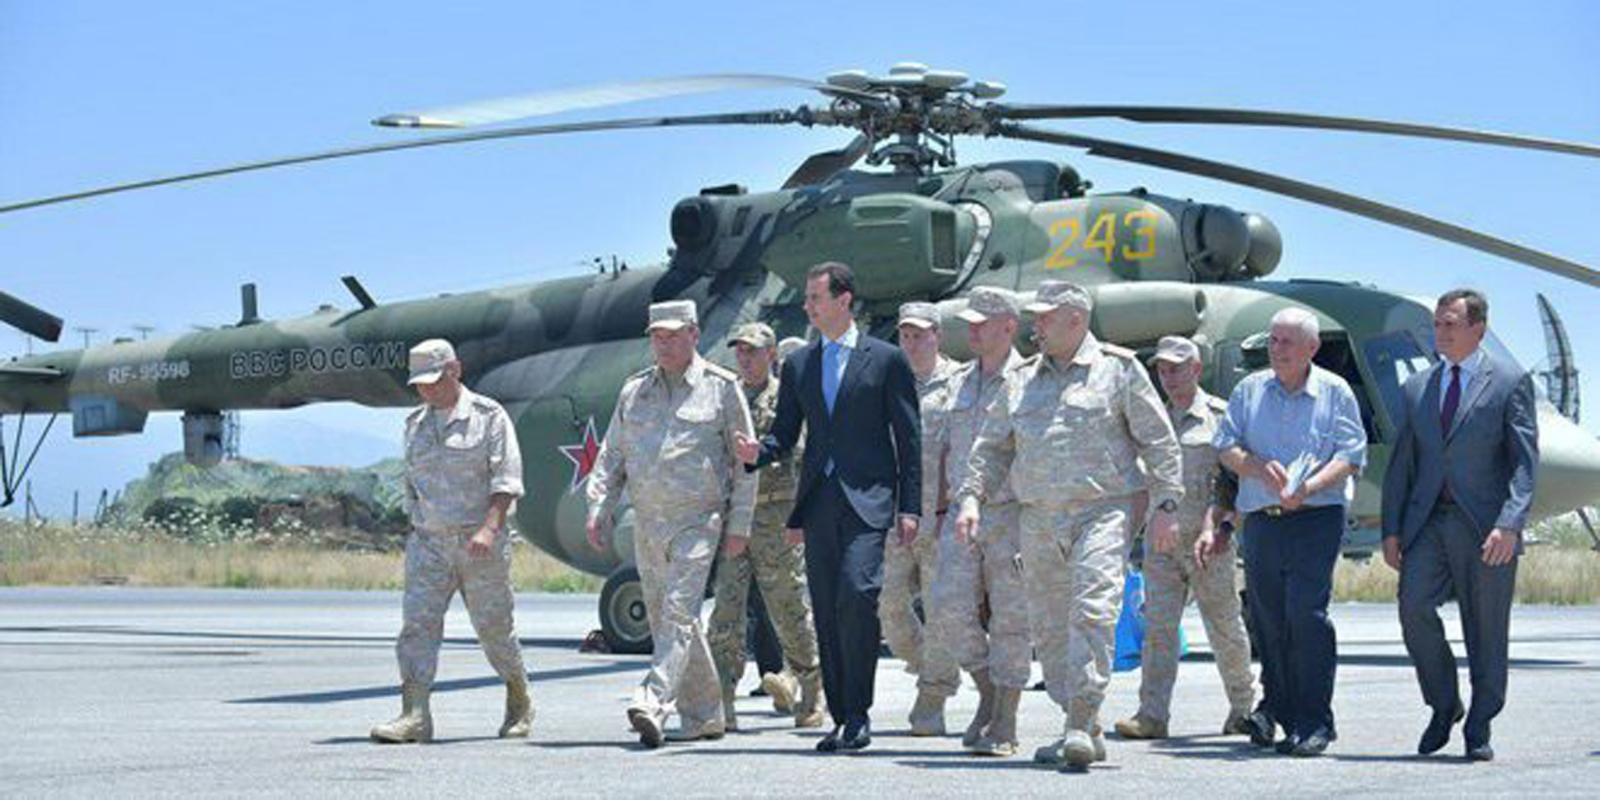 Syrian President Bashar al-Assad visits air base in western Syria